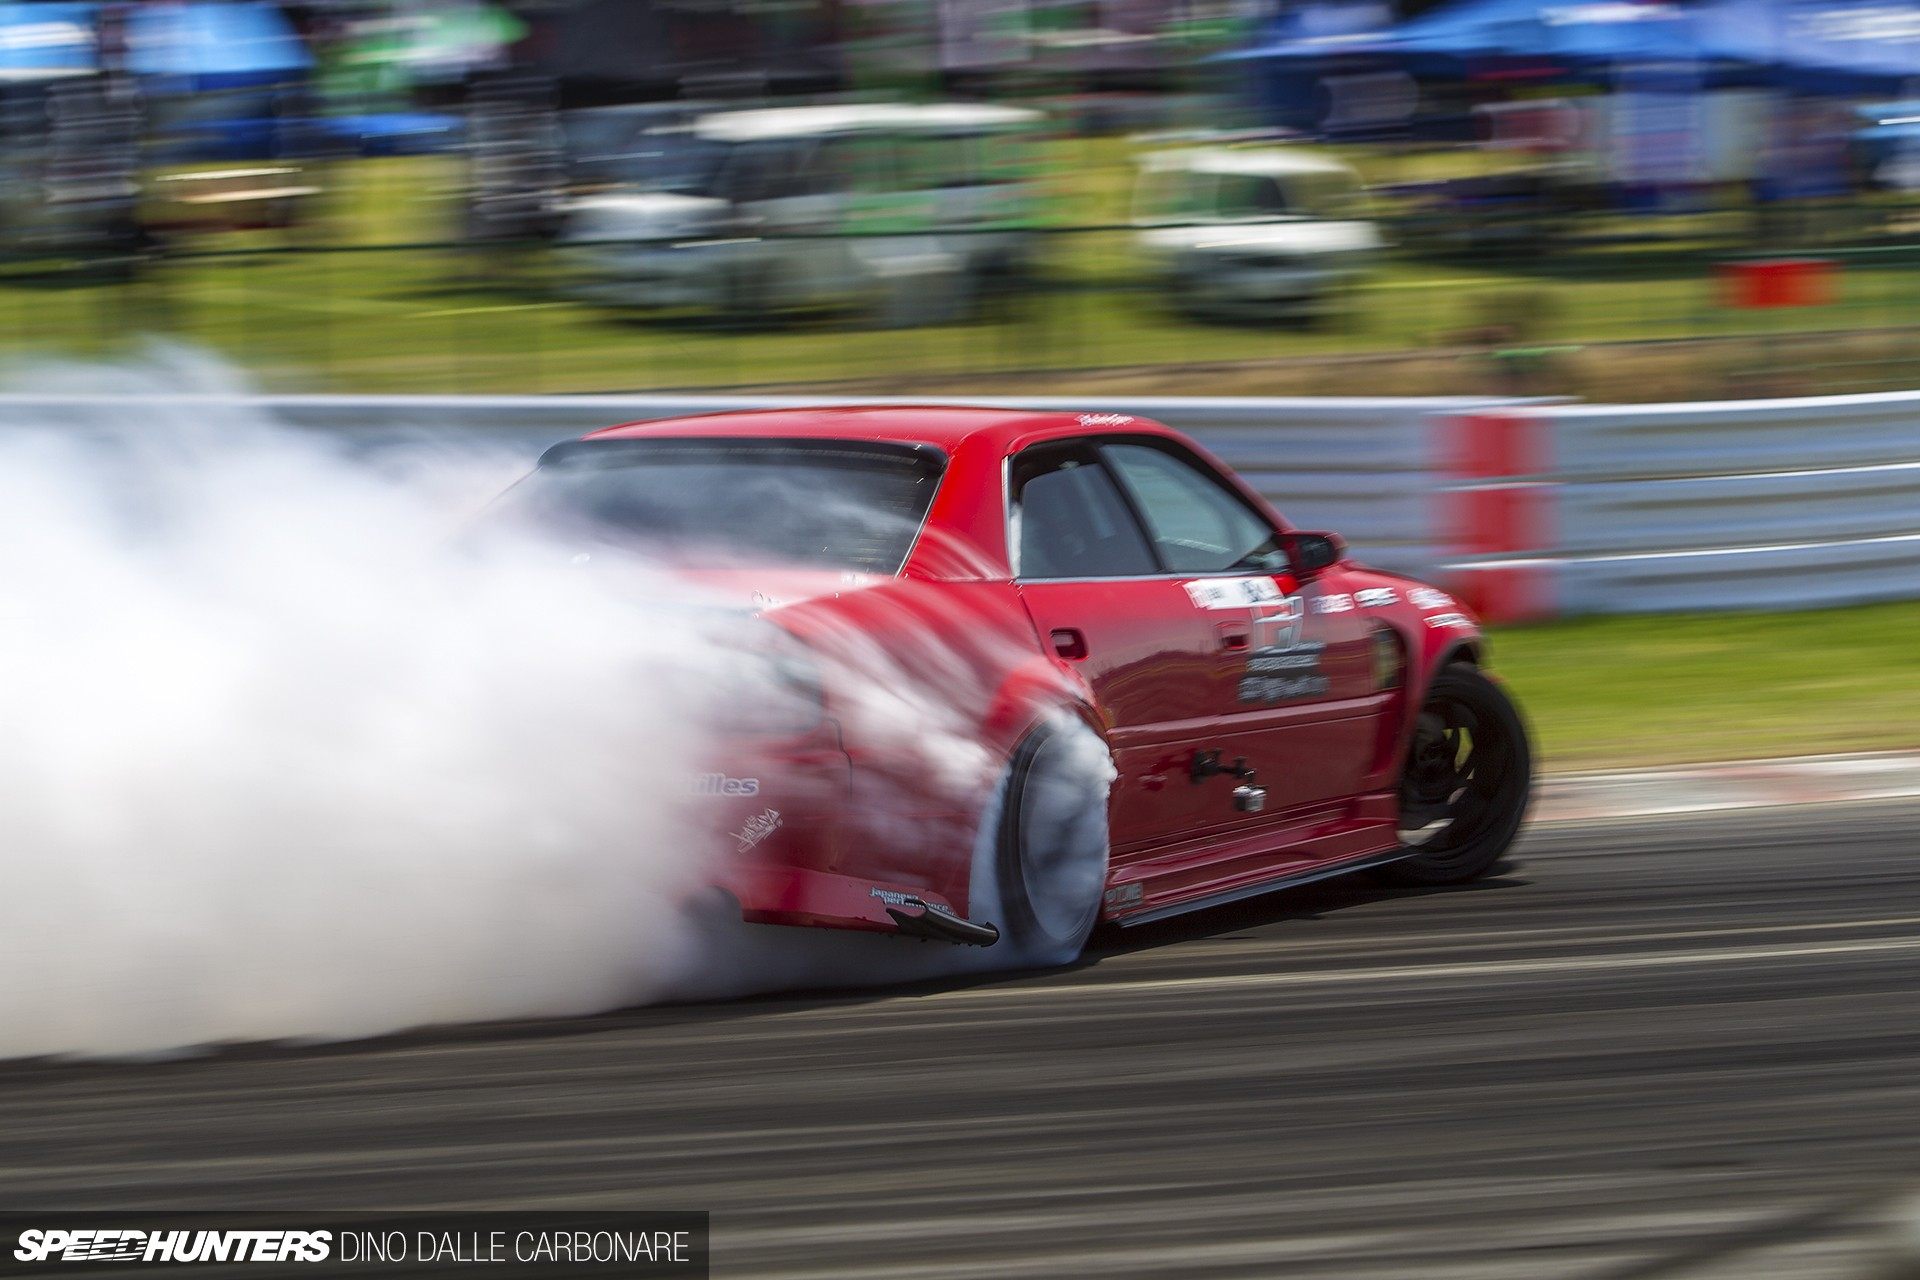 Vintage Mustang Cars Wallpapers Drift Smoke Toyota Chaser Jzx Wallpapers Hd Desktop